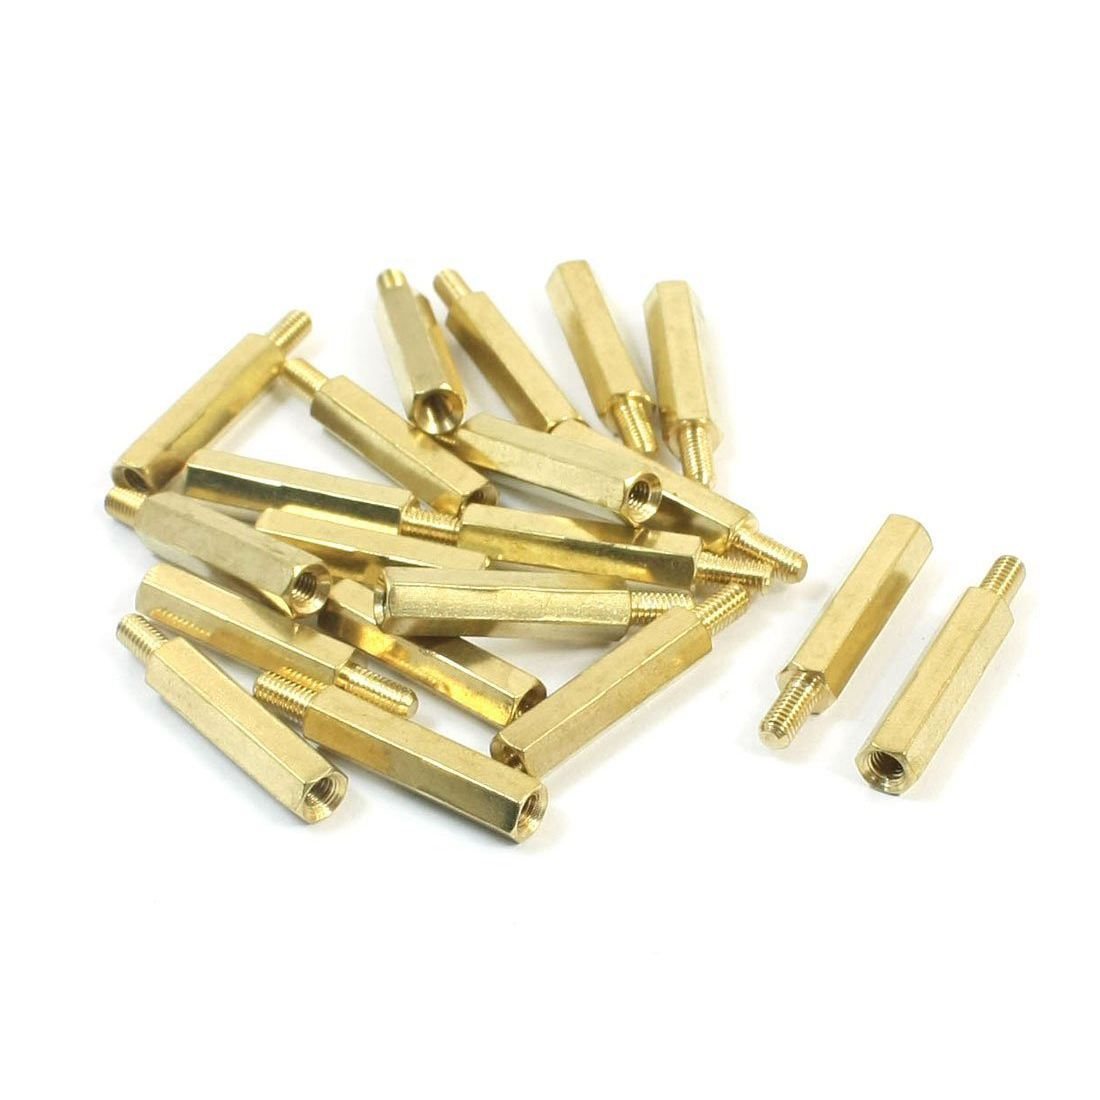 New 20 Pcs <font><b>M3</b></font> x <font><b>20mm</b></font> x 26mm Male to Female PCB Hexagon Nut <font><b>Standoff</b></font> Spacer image